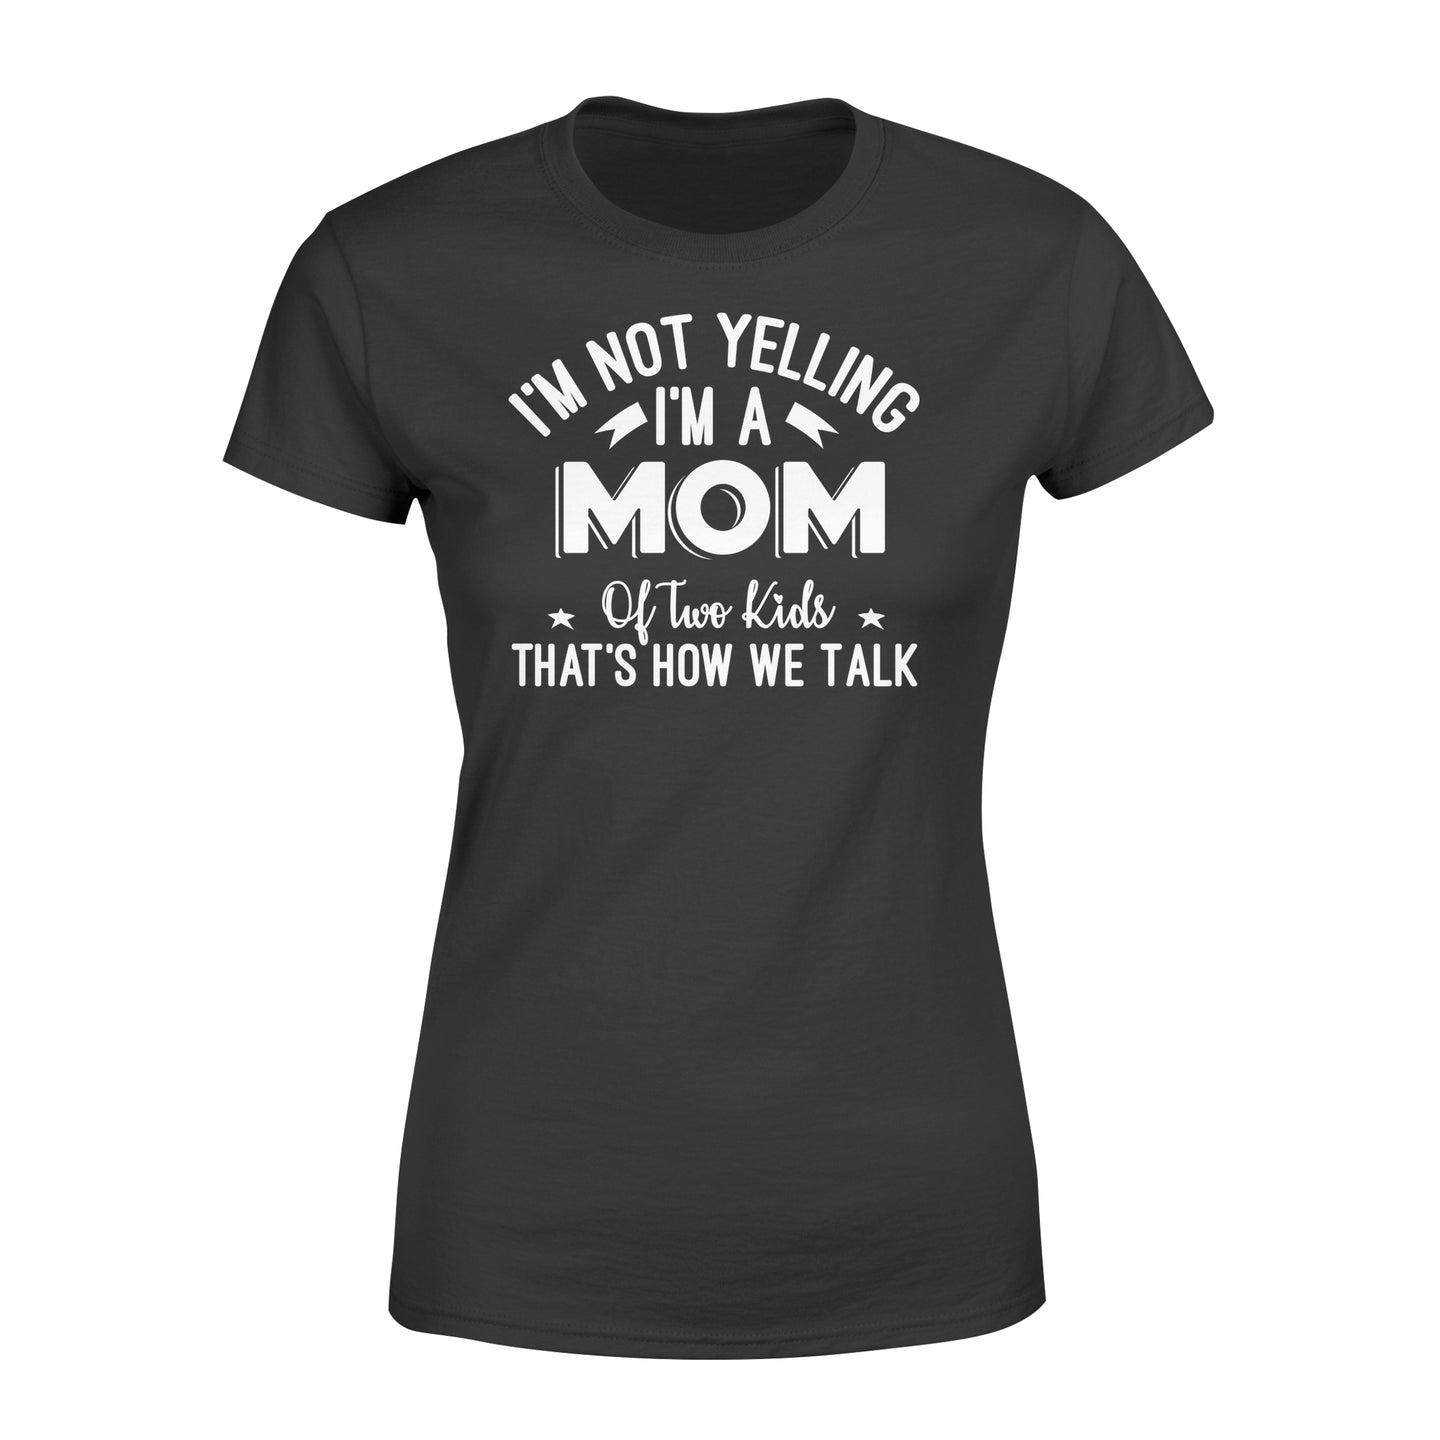 I'm Not Yelling I'm A Mom Of Two Kids Thats How We Talk - Standard Women's T-shirt Apparel XS / Black